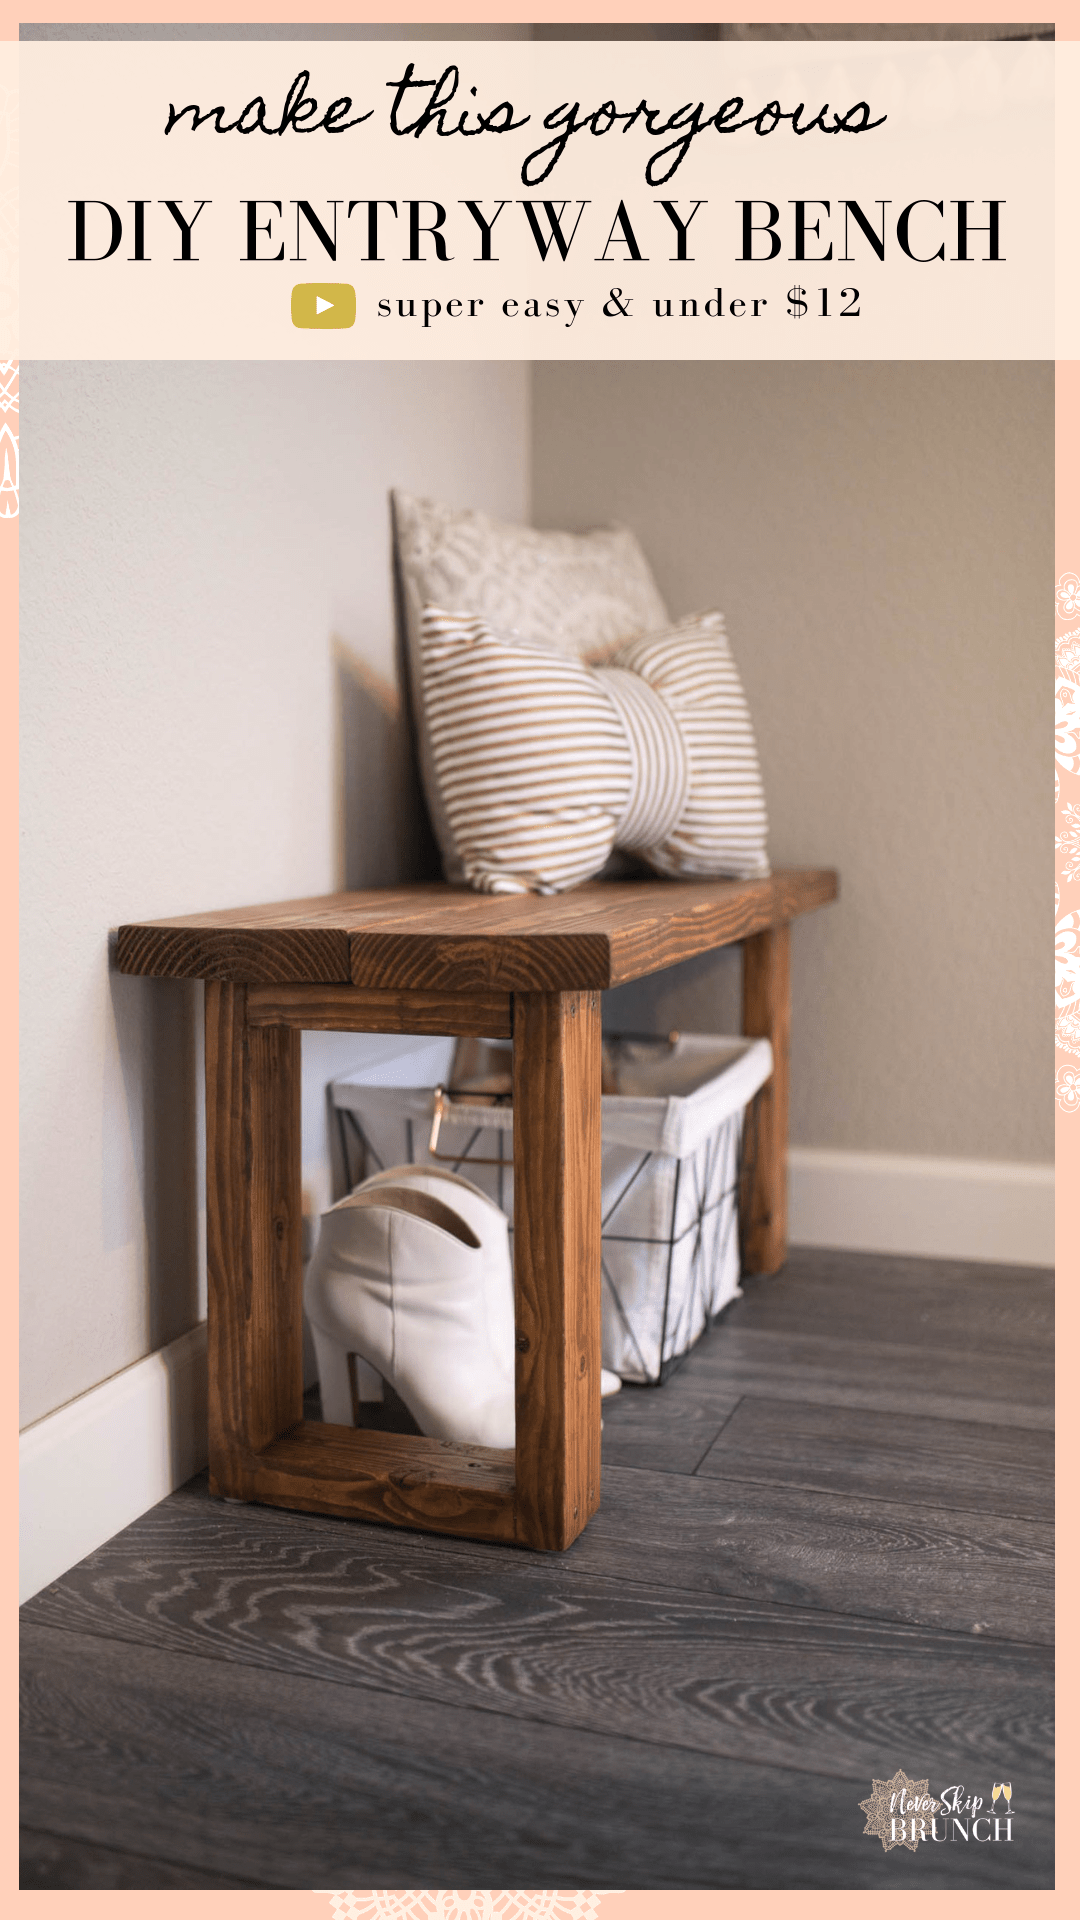 Make This Gorgeous Diy Entryway Bench For Under 12 Diy Entryway Bench Diy Entryway Diy Entryway Table